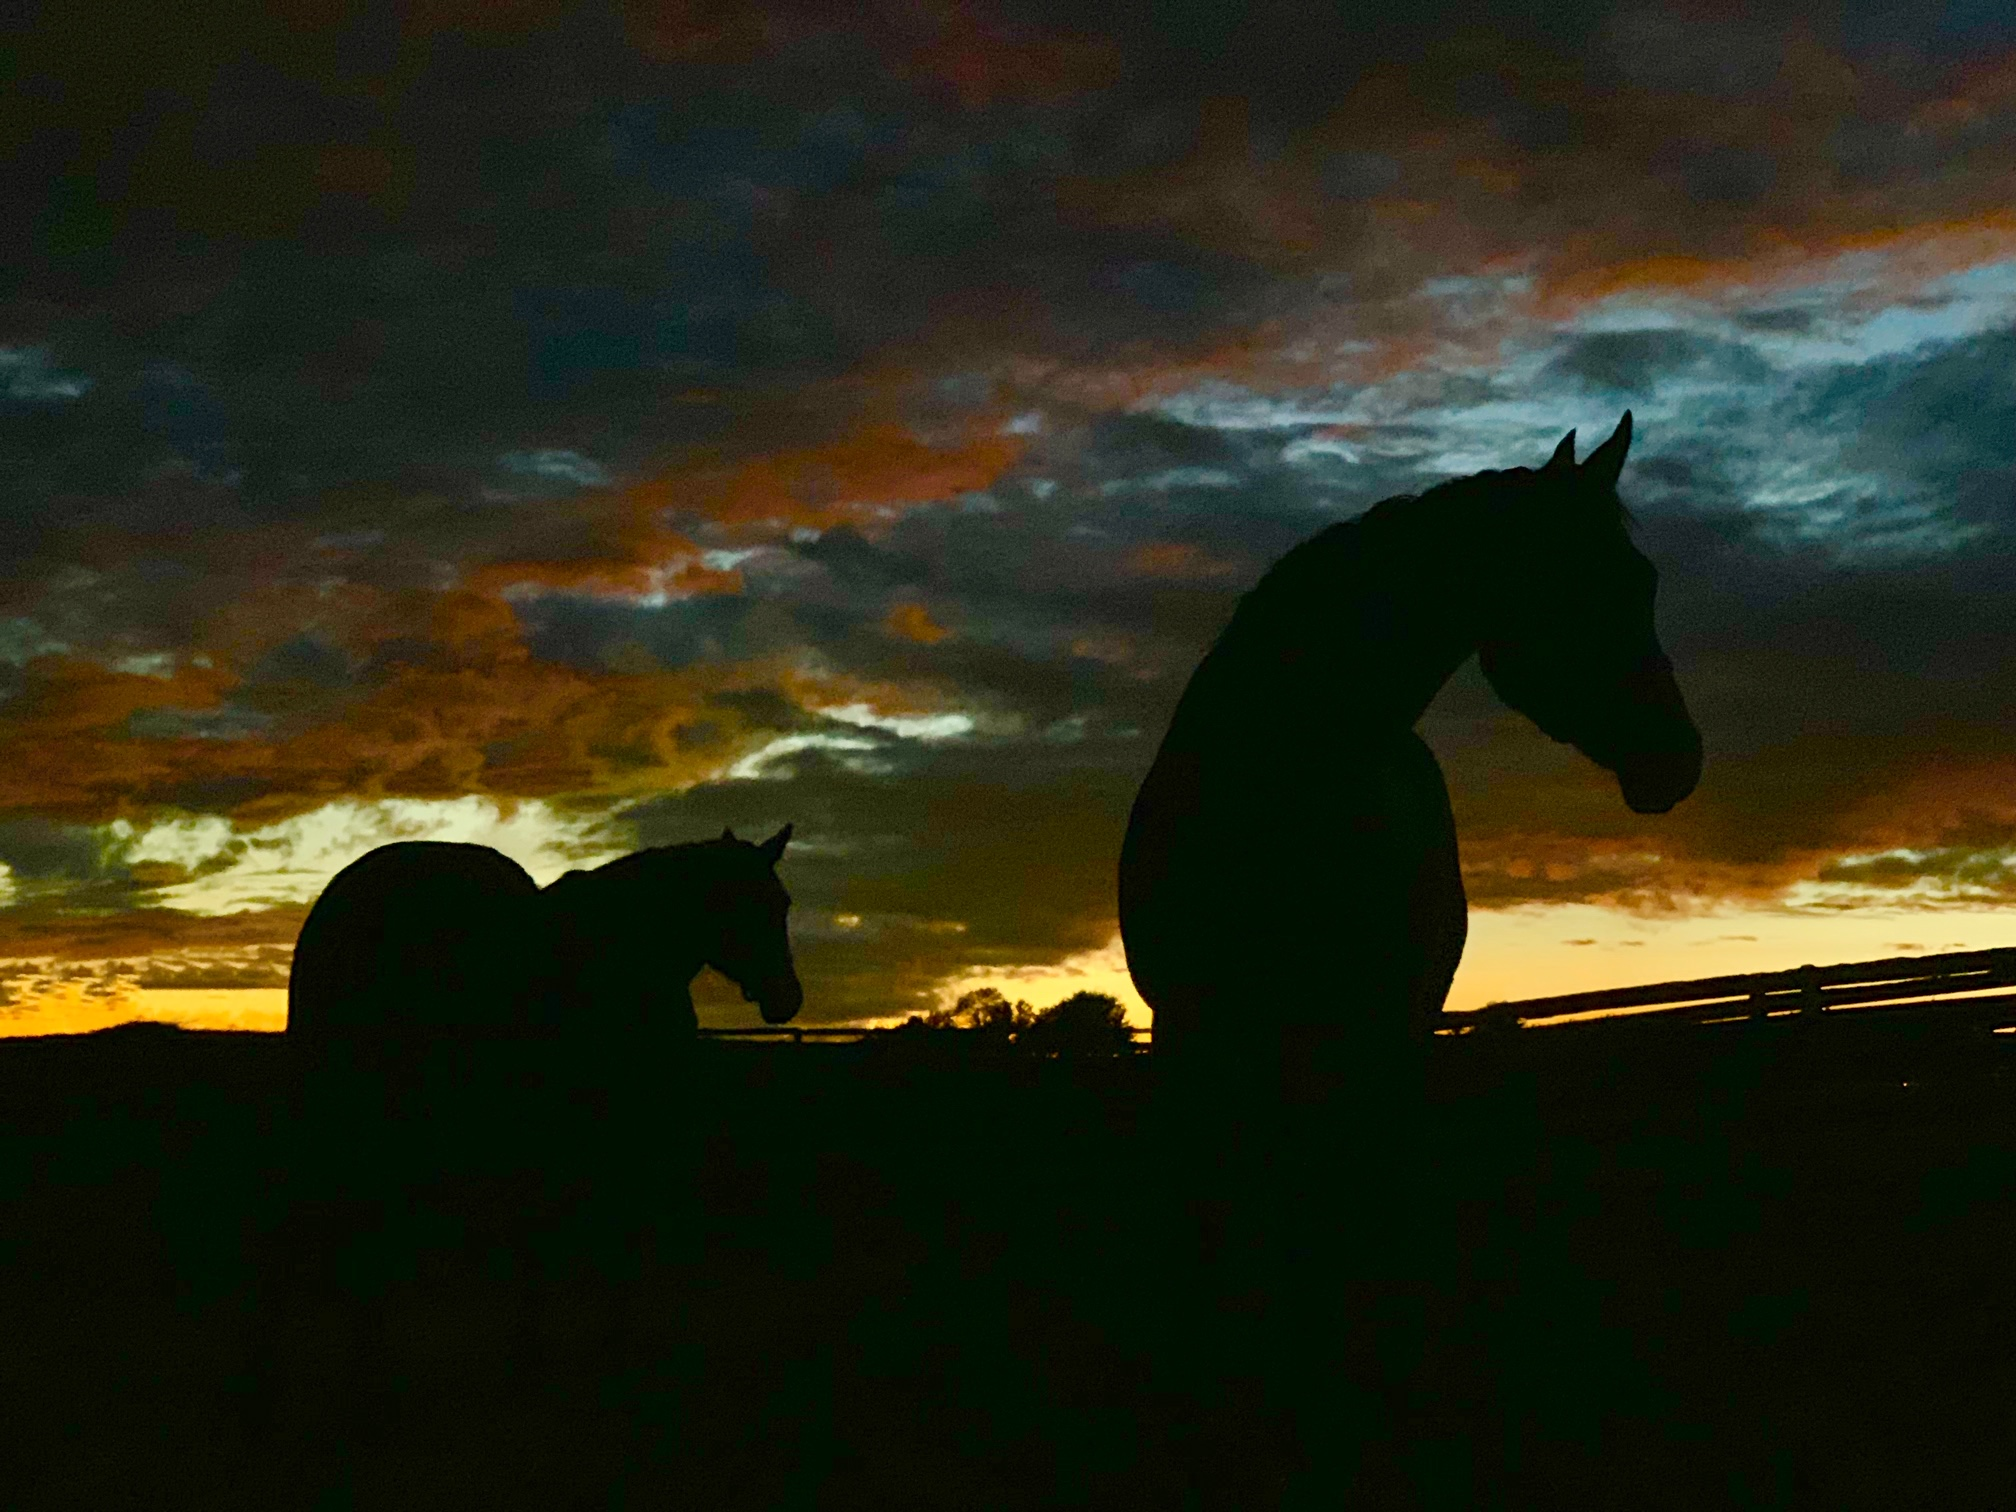 Mares in sanctuary at Foxie G look breathtakingly beautiful at sunset.